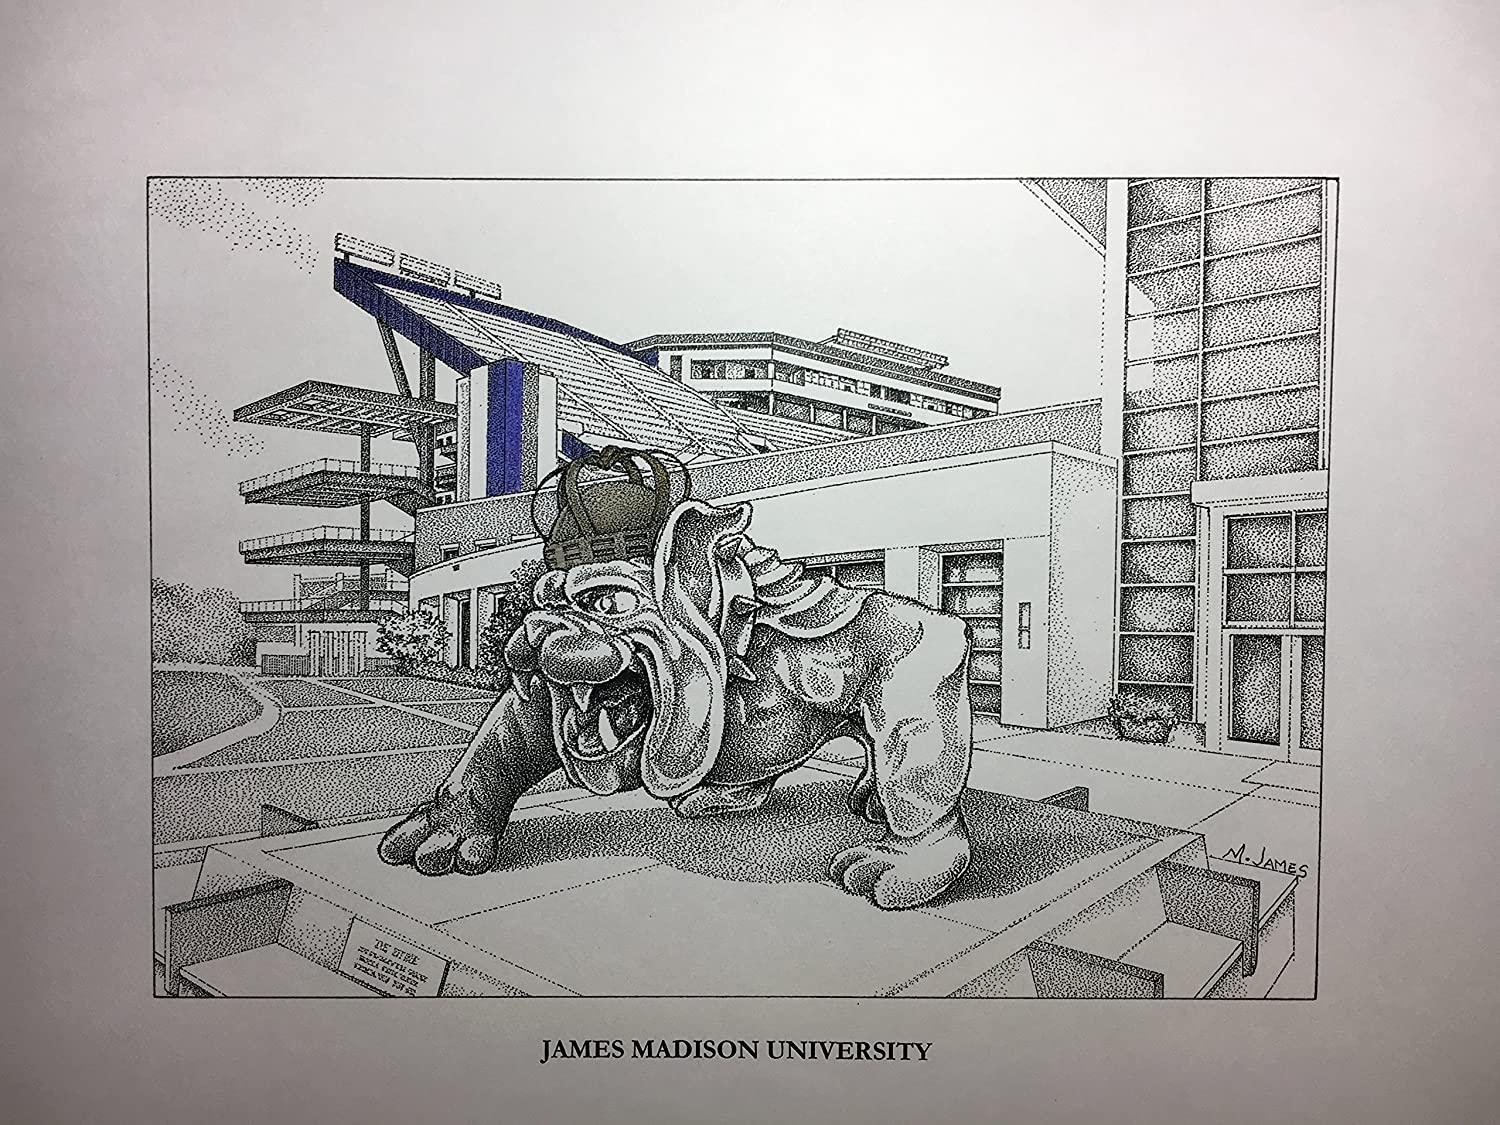 James Madison football stadium with duke statue 11'x14' hand-drawn pen and ink print